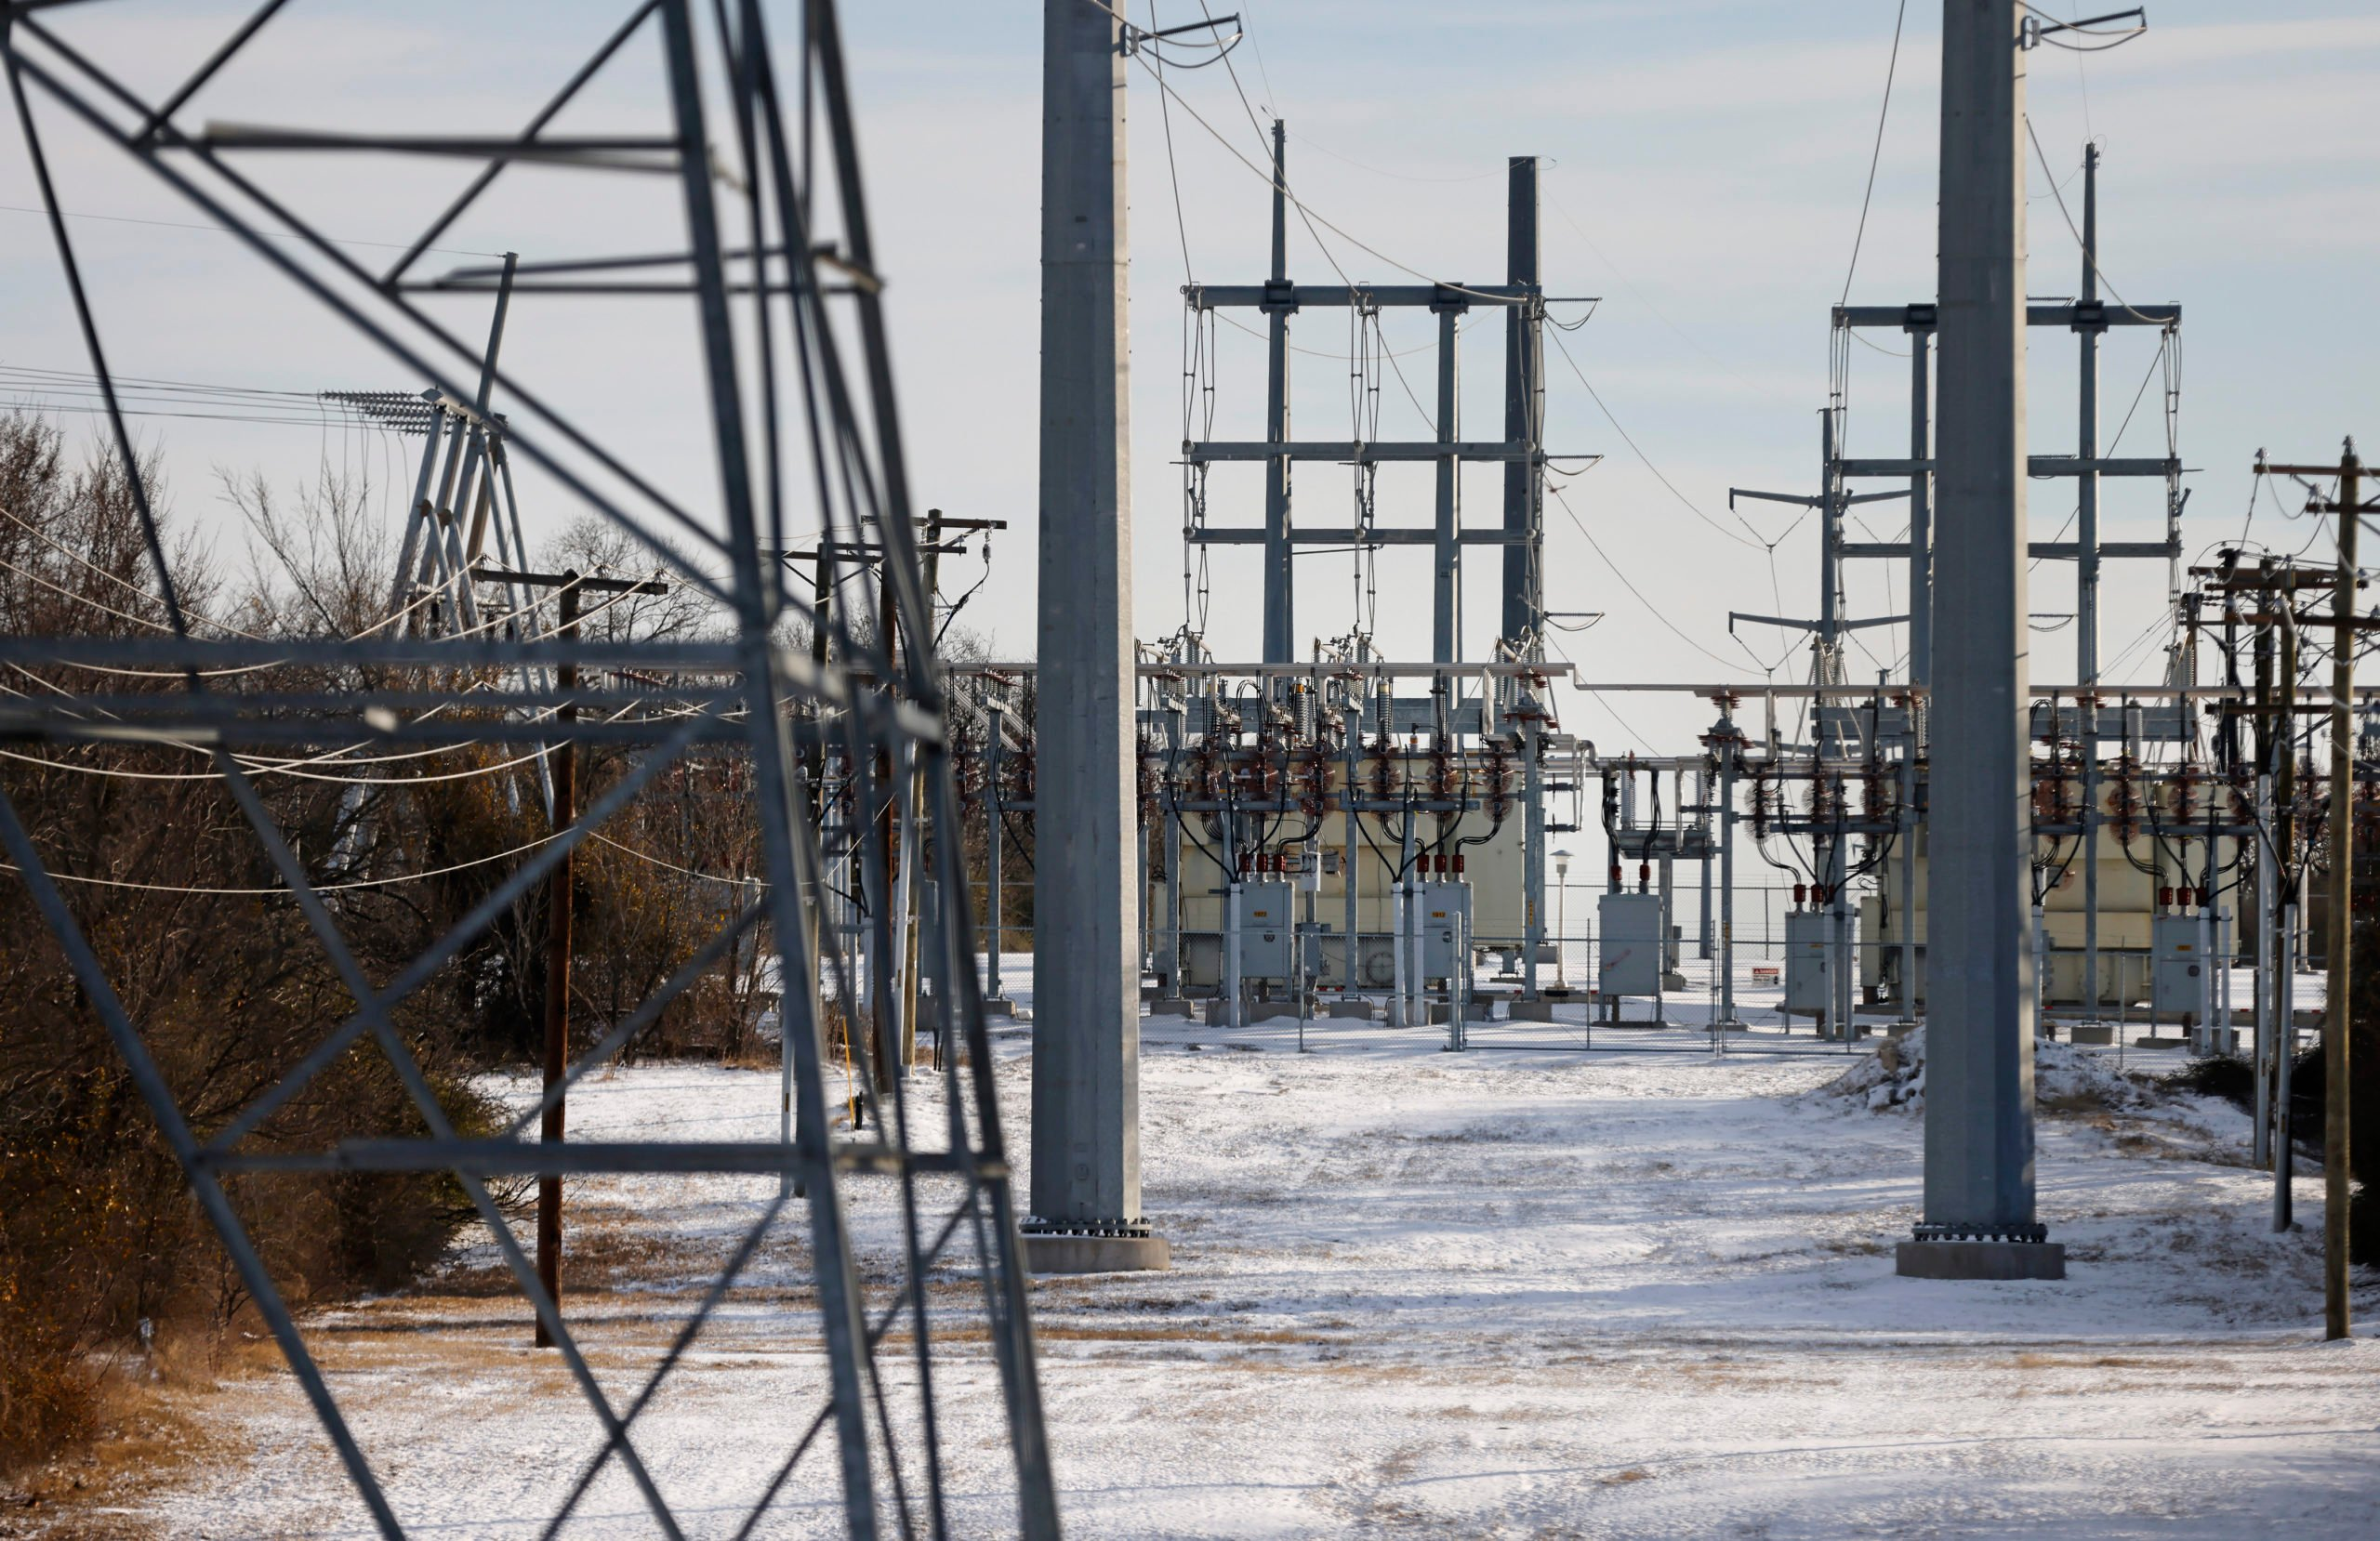 FORT WORTH, TX - FEBRUARY 16: Transmission towers and power lines lead to a substation after a snow storm on February 16, 2021 in Fort Worth, Texas. Winter storm Uri has brought historic cold weather and power outages to Texas as storms have swept across 26 states with a mix of freezing temperatures and precipitation. (Photo by Ron Jenkins/Getty Images)